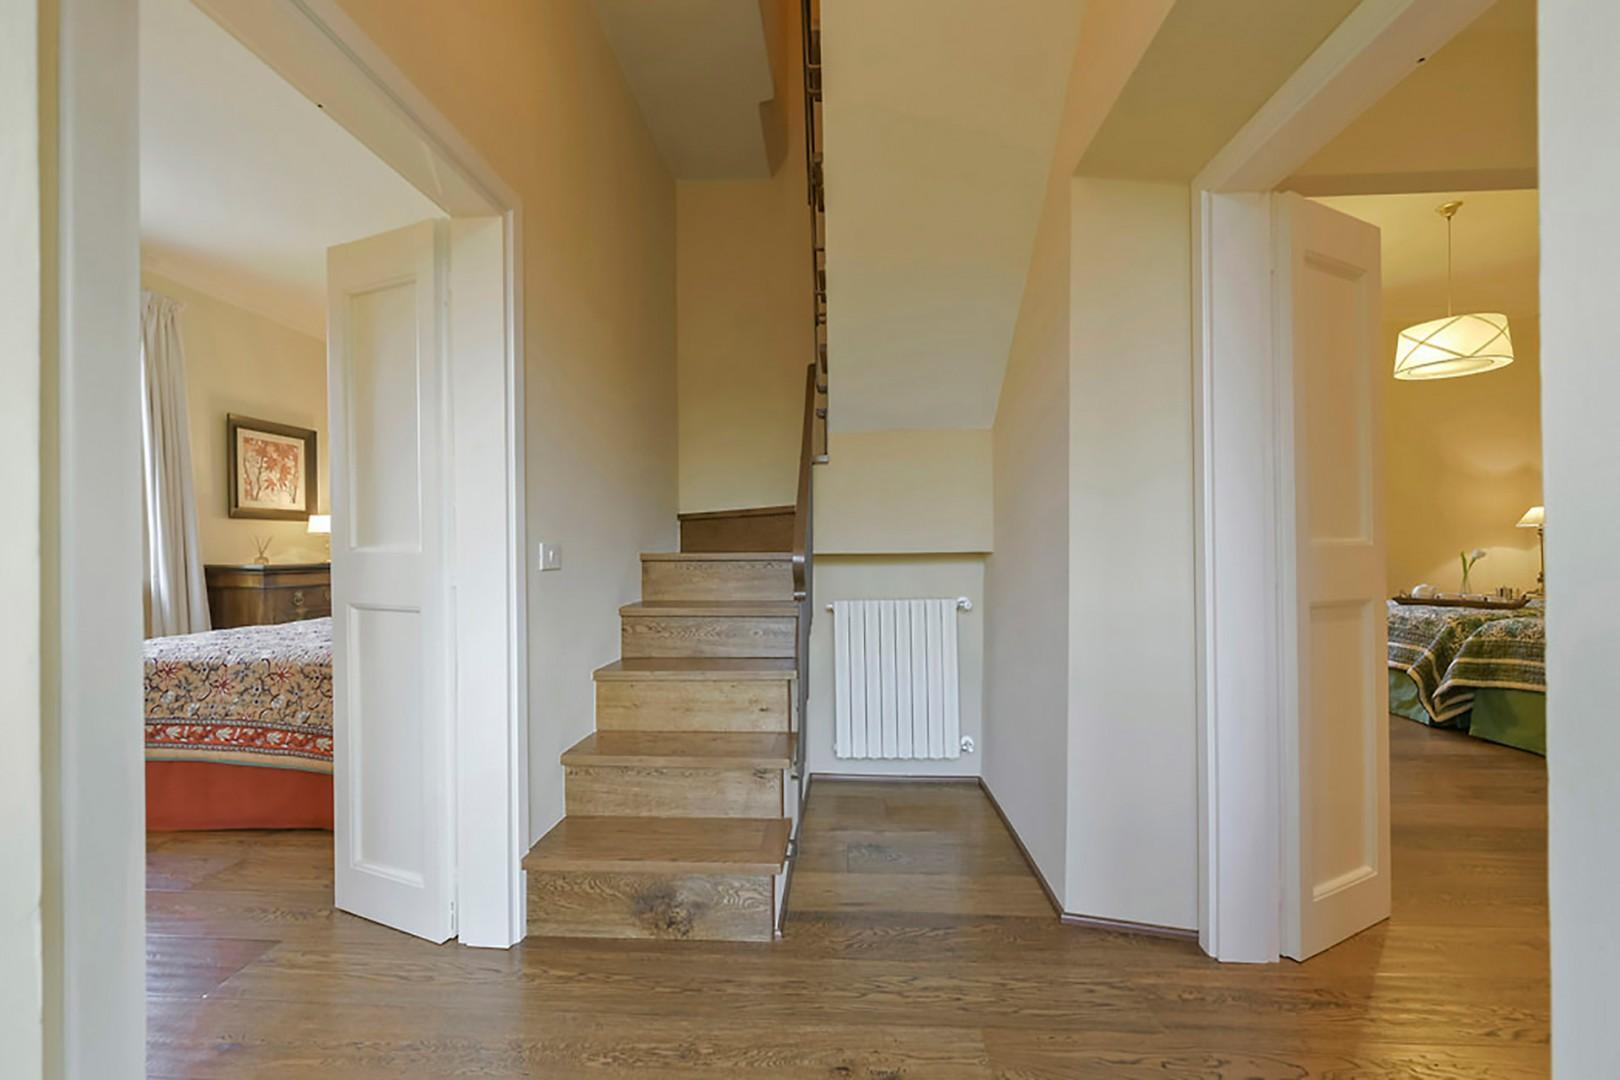 Steps leading to 3rd floor.